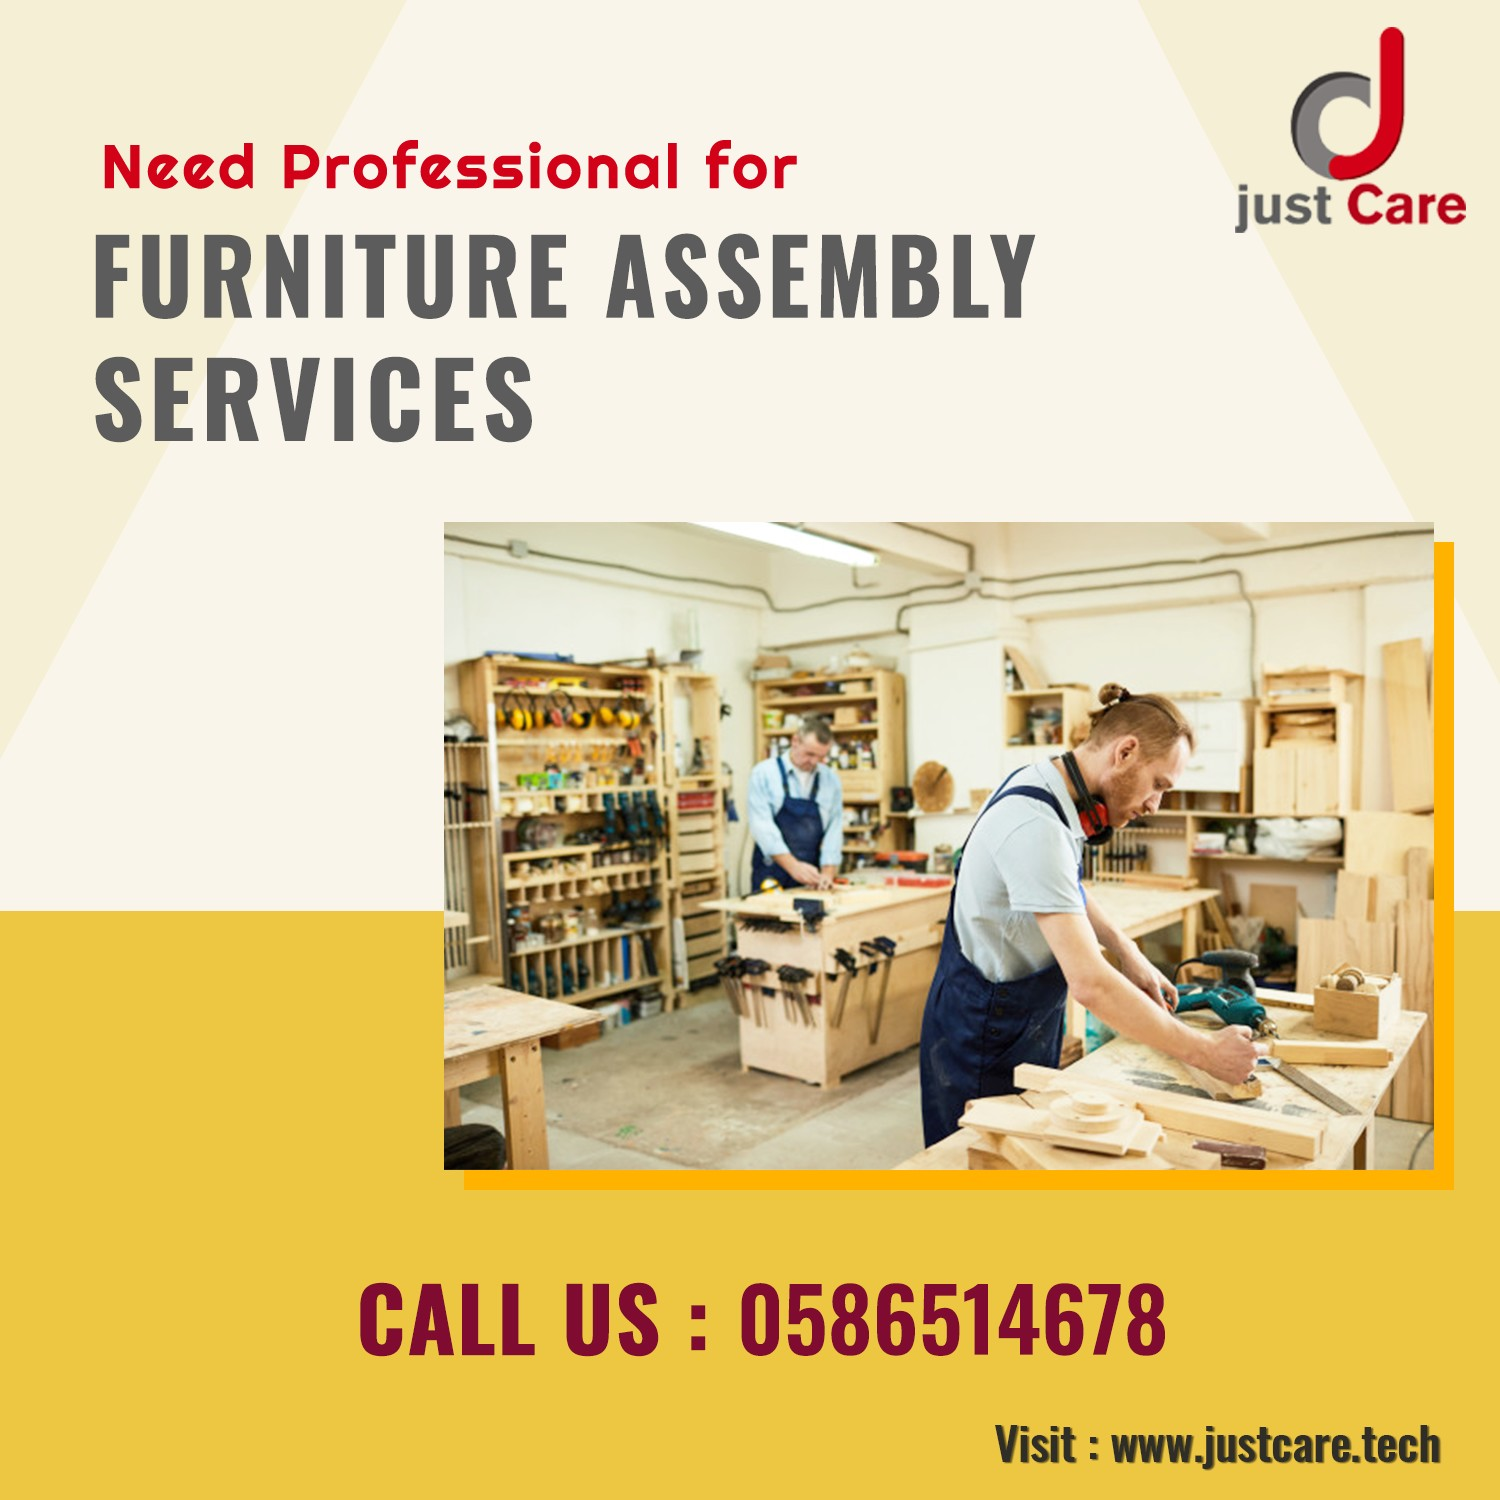 Book Furniture Assembly Services in Dubai at AED 95 | Handyman